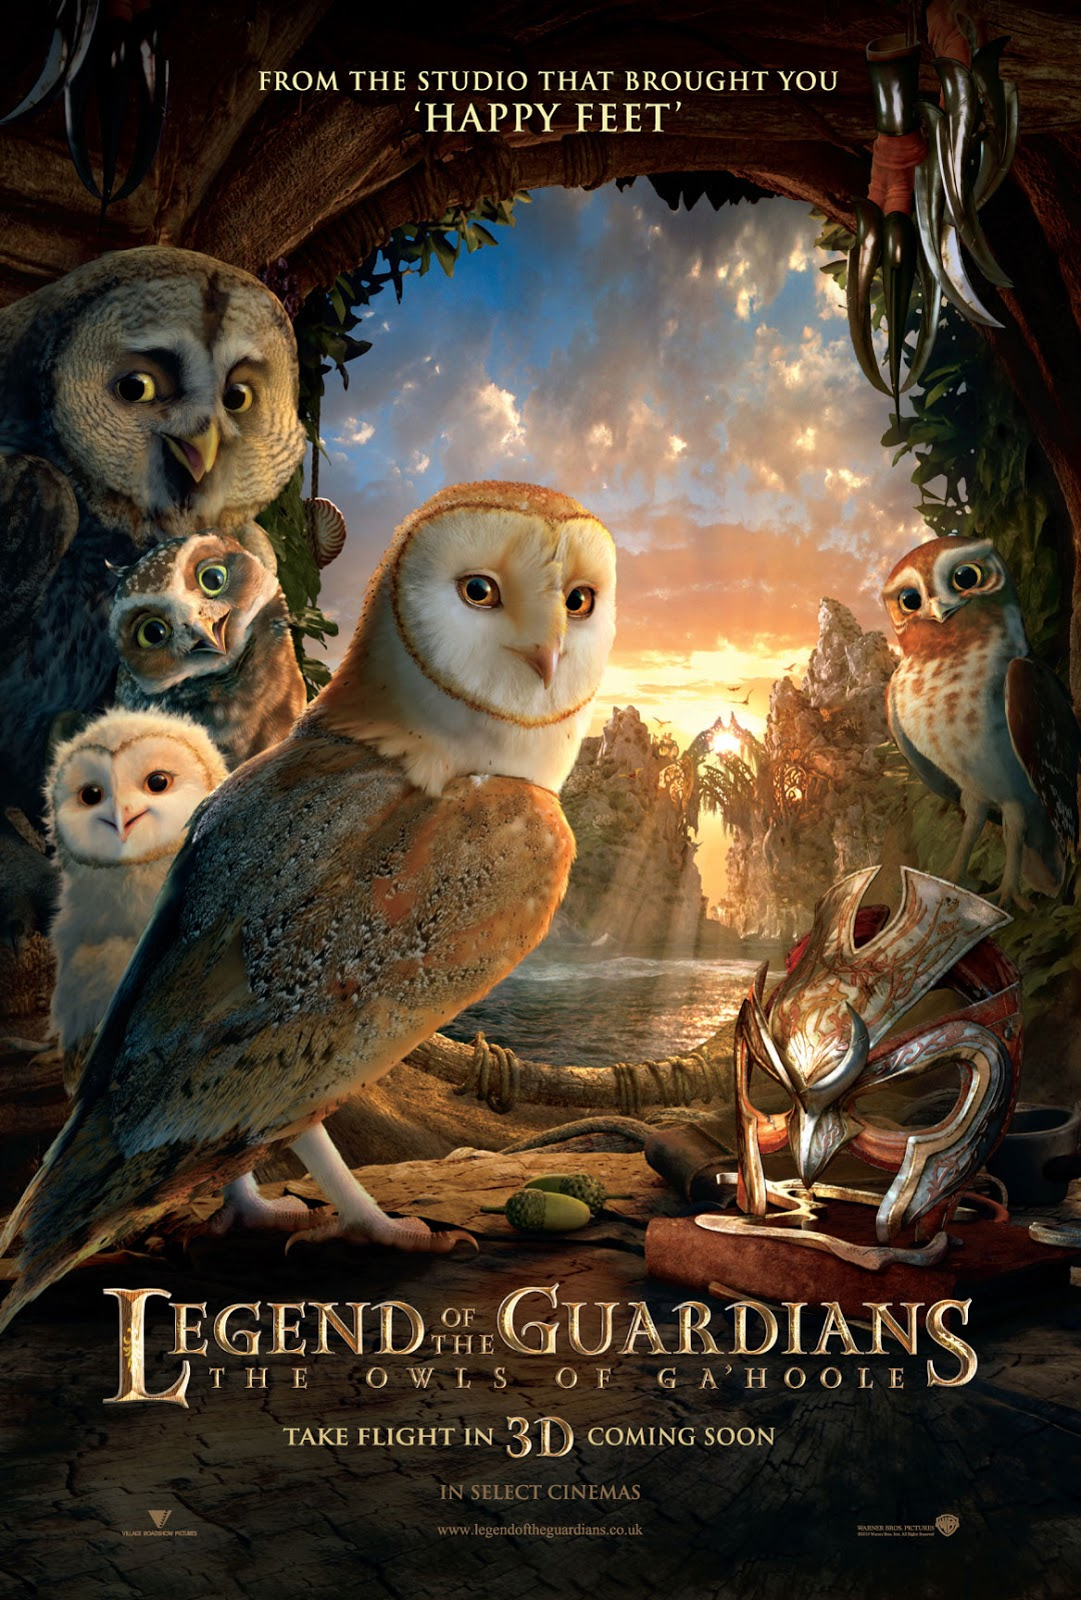 Watch Legend of the Guardians: The Owls of Ga'Hoole (2010) Online For Free Full Movie English Stream